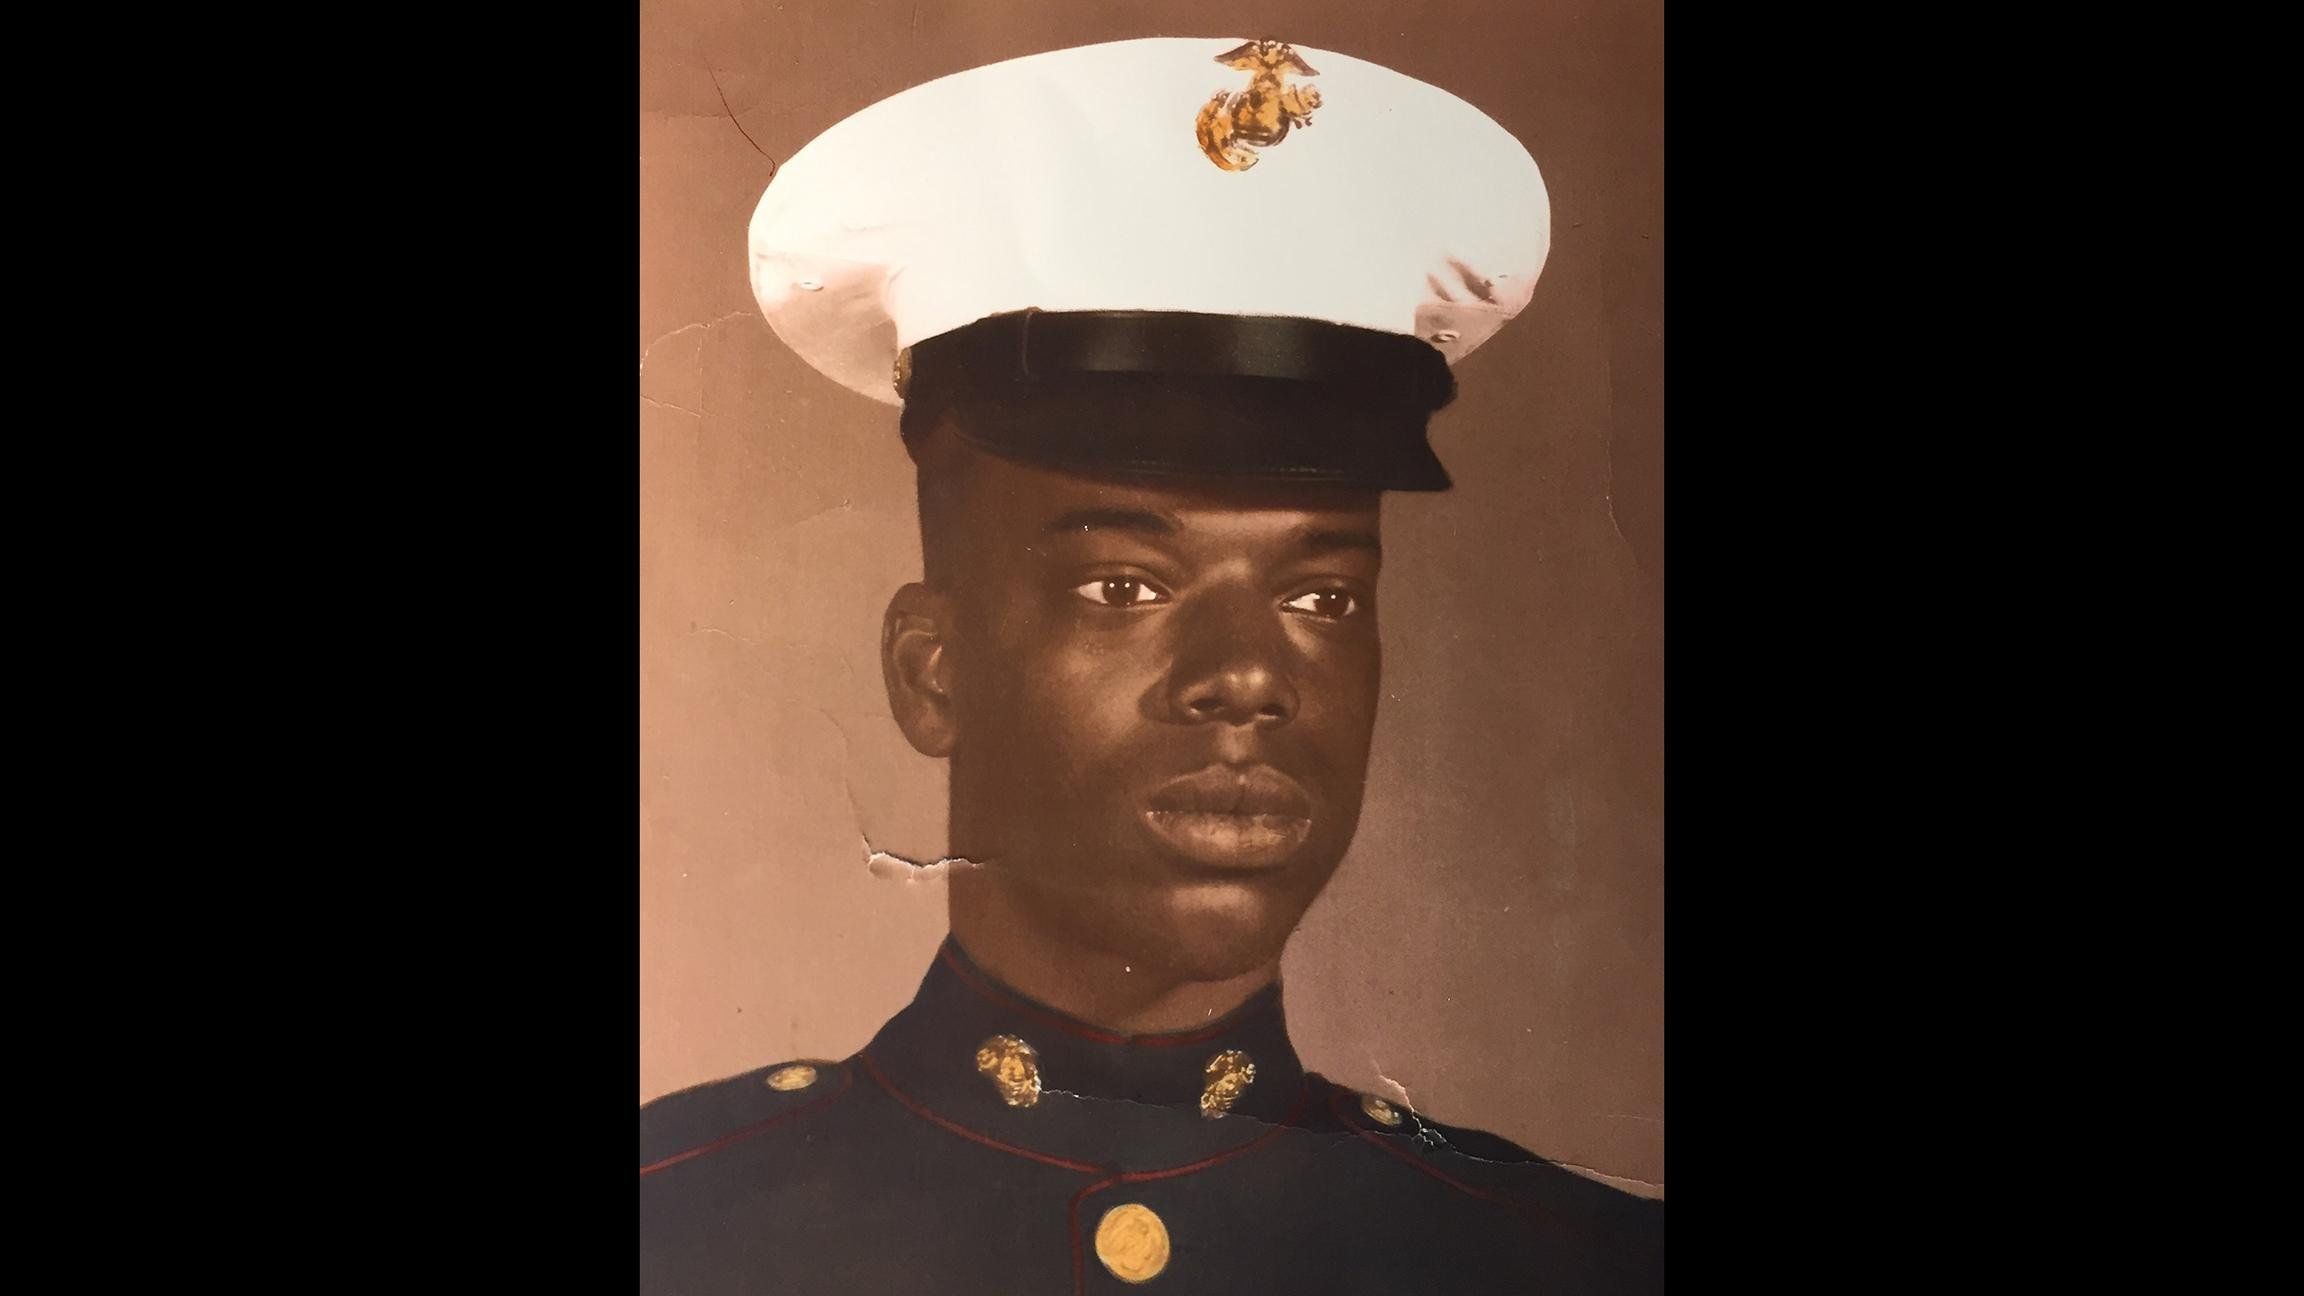 Herschel Embry served in the 3rd Marine Division in South Vietnam near the demilitarized zone. (Courtesy of Herschel Embry)